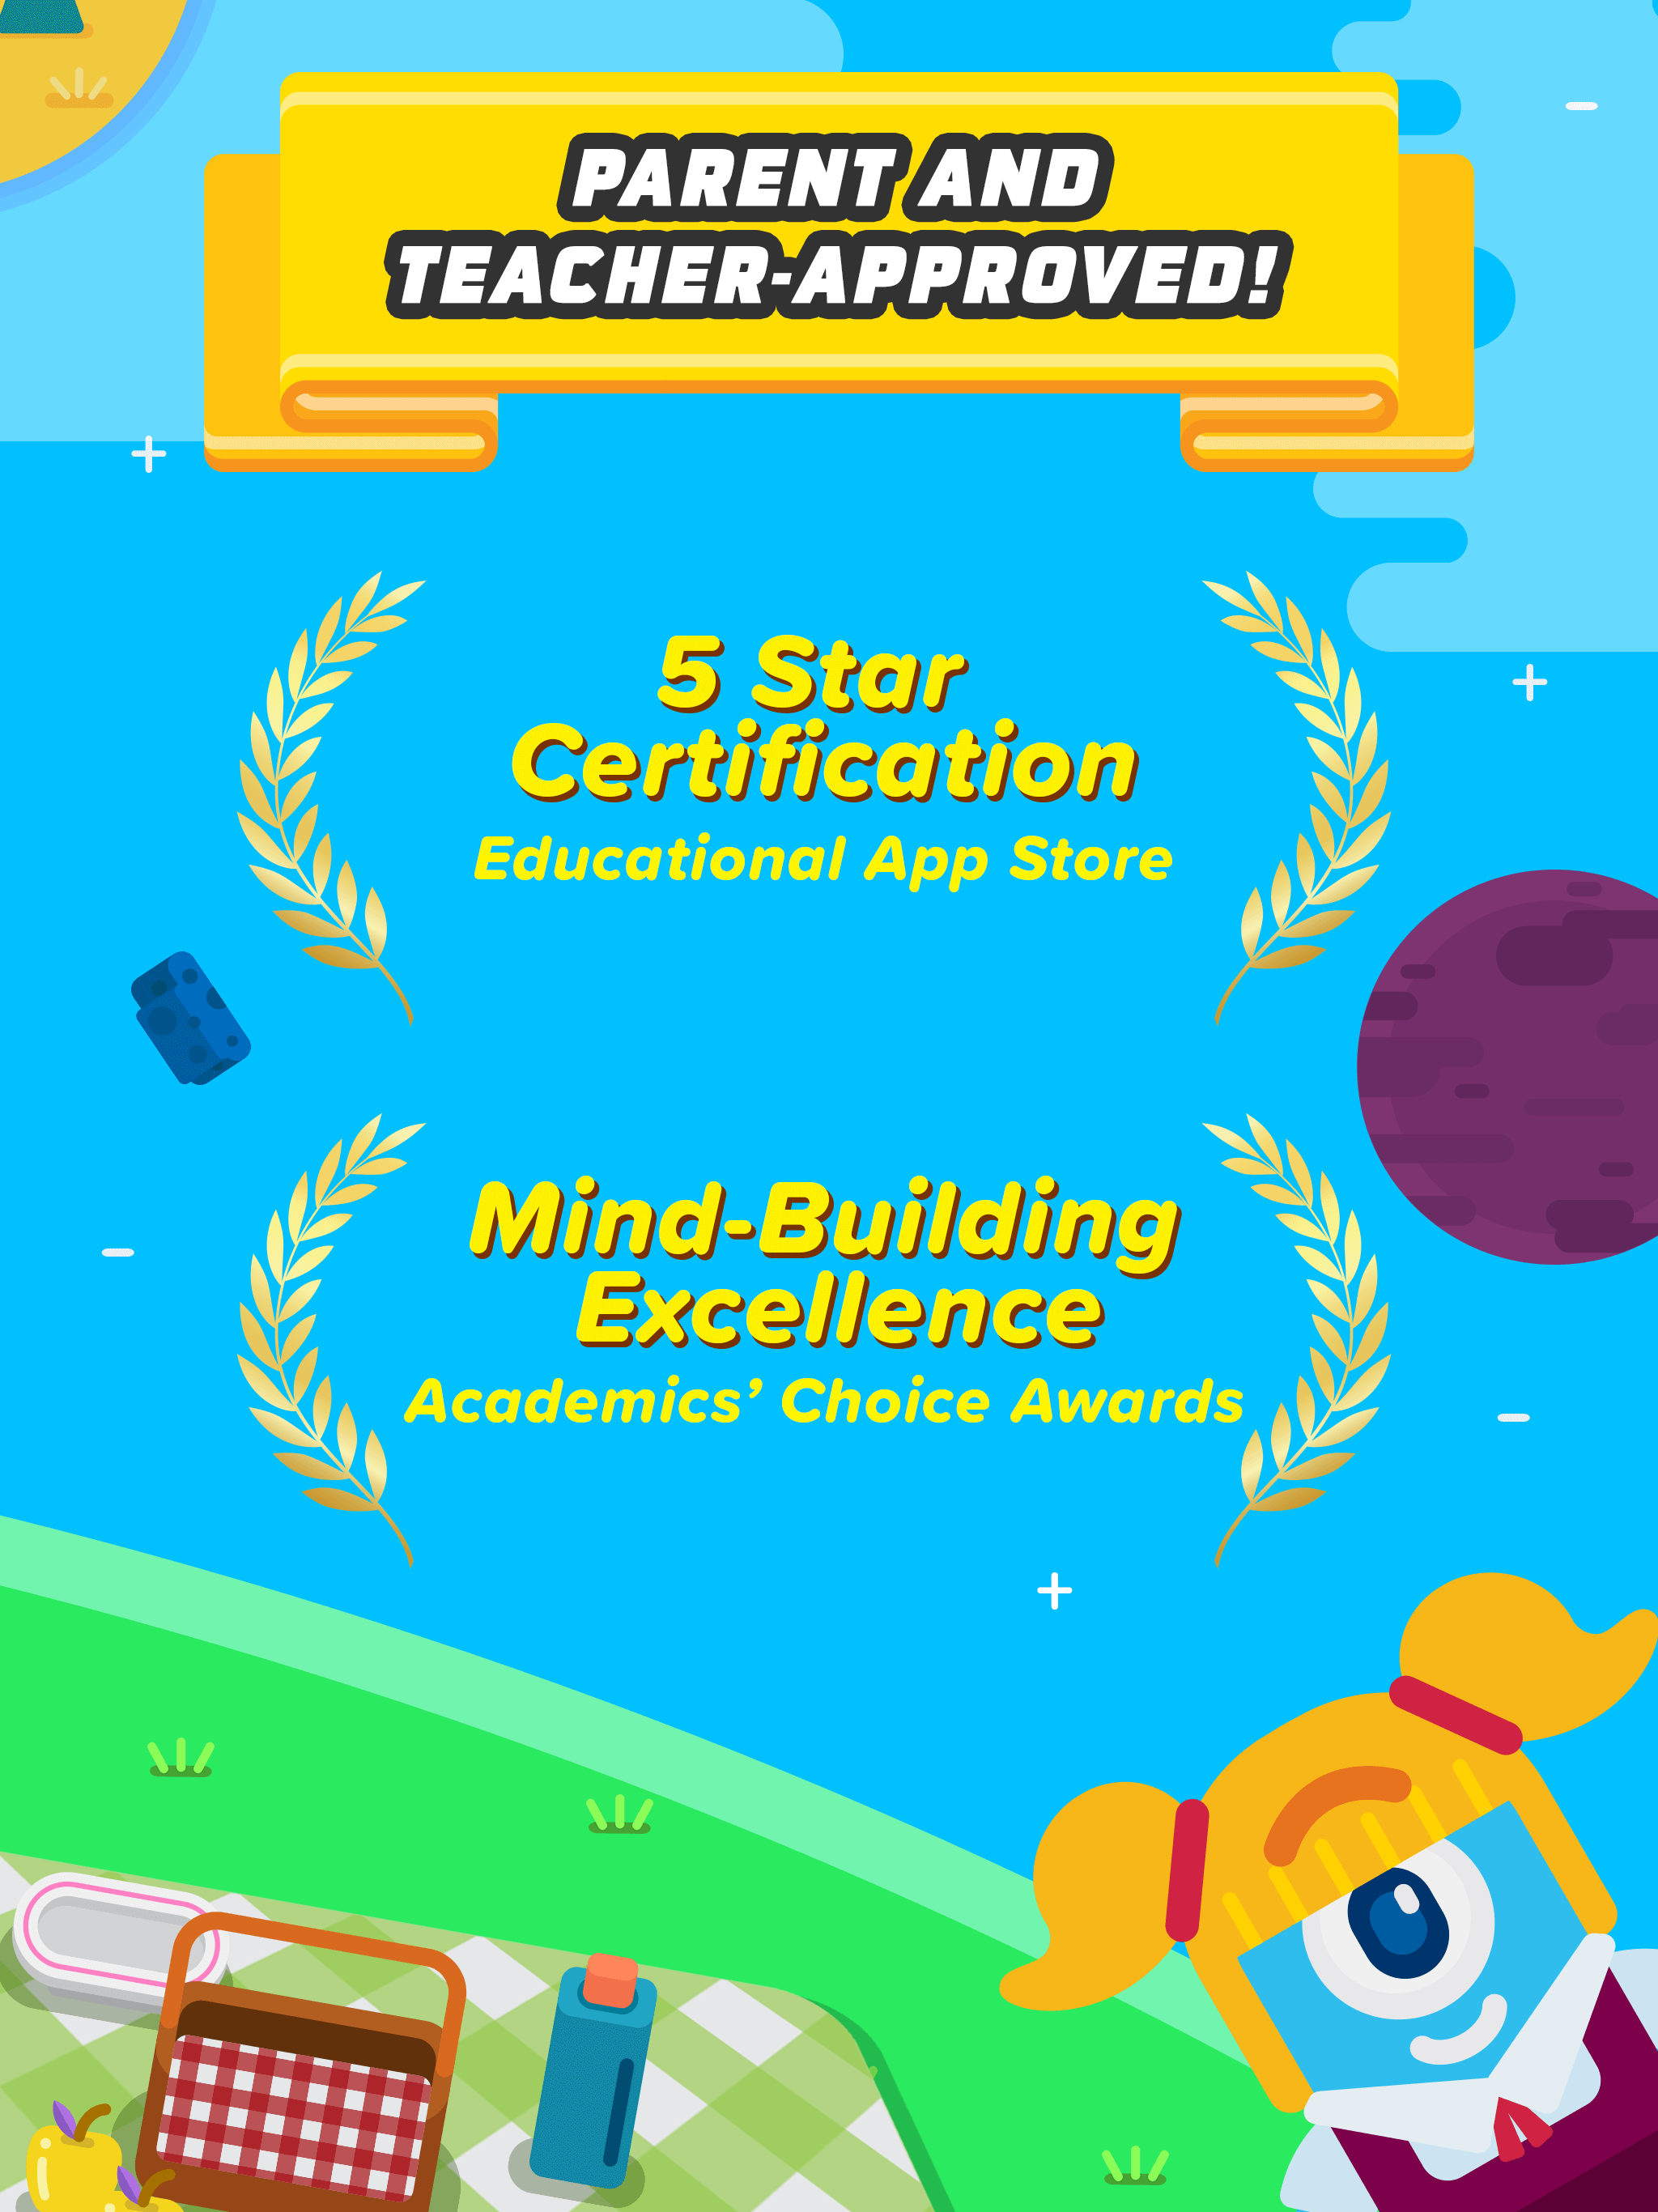 5 Star Certification and Awards Recognition